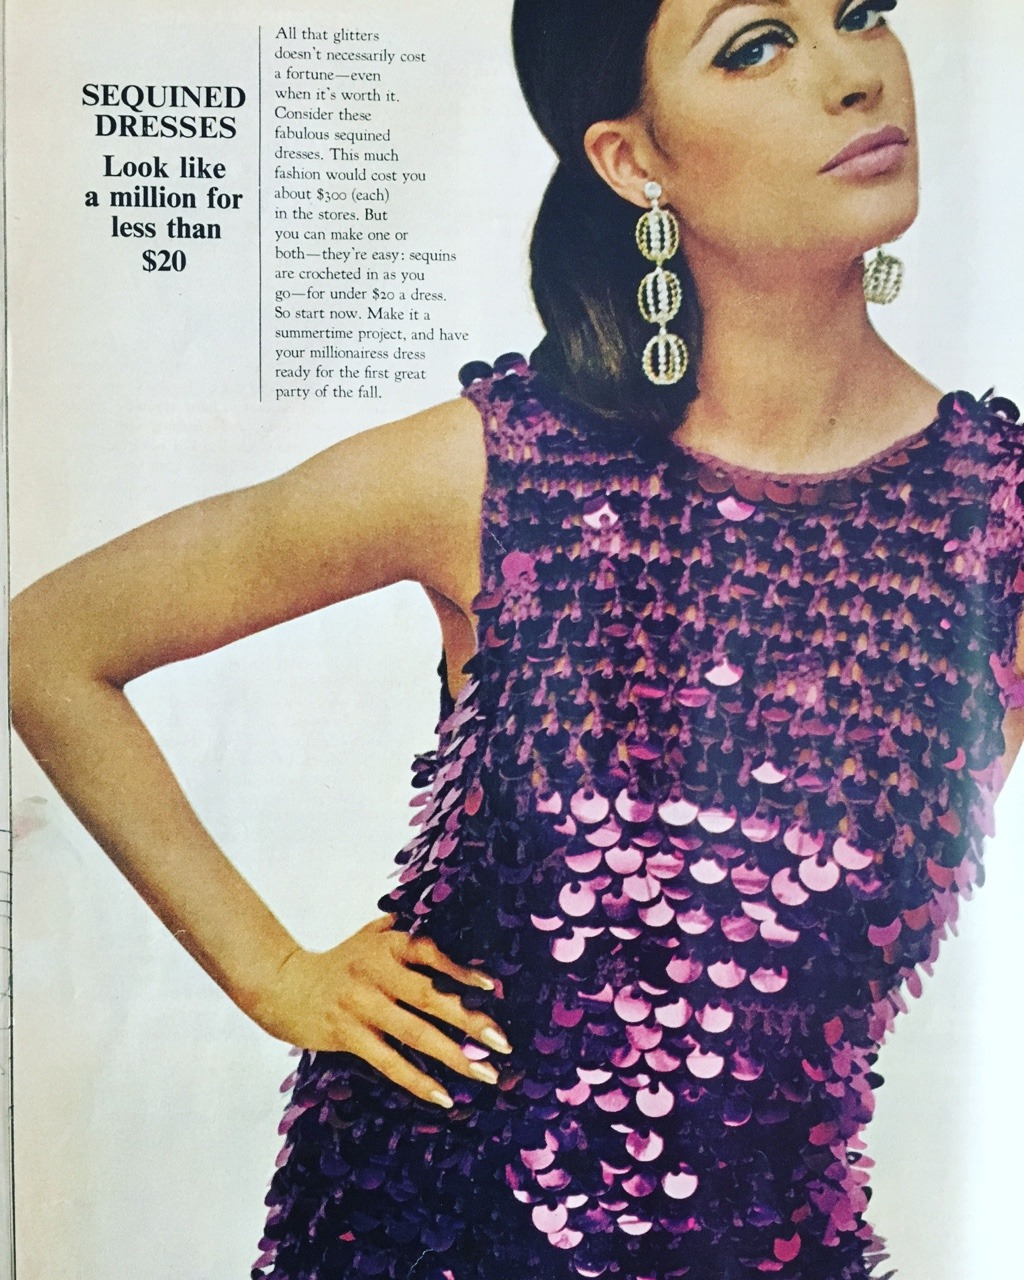 Sequined dresses - look like a million for less than $20.     Ladies' Home Journal. July 1966